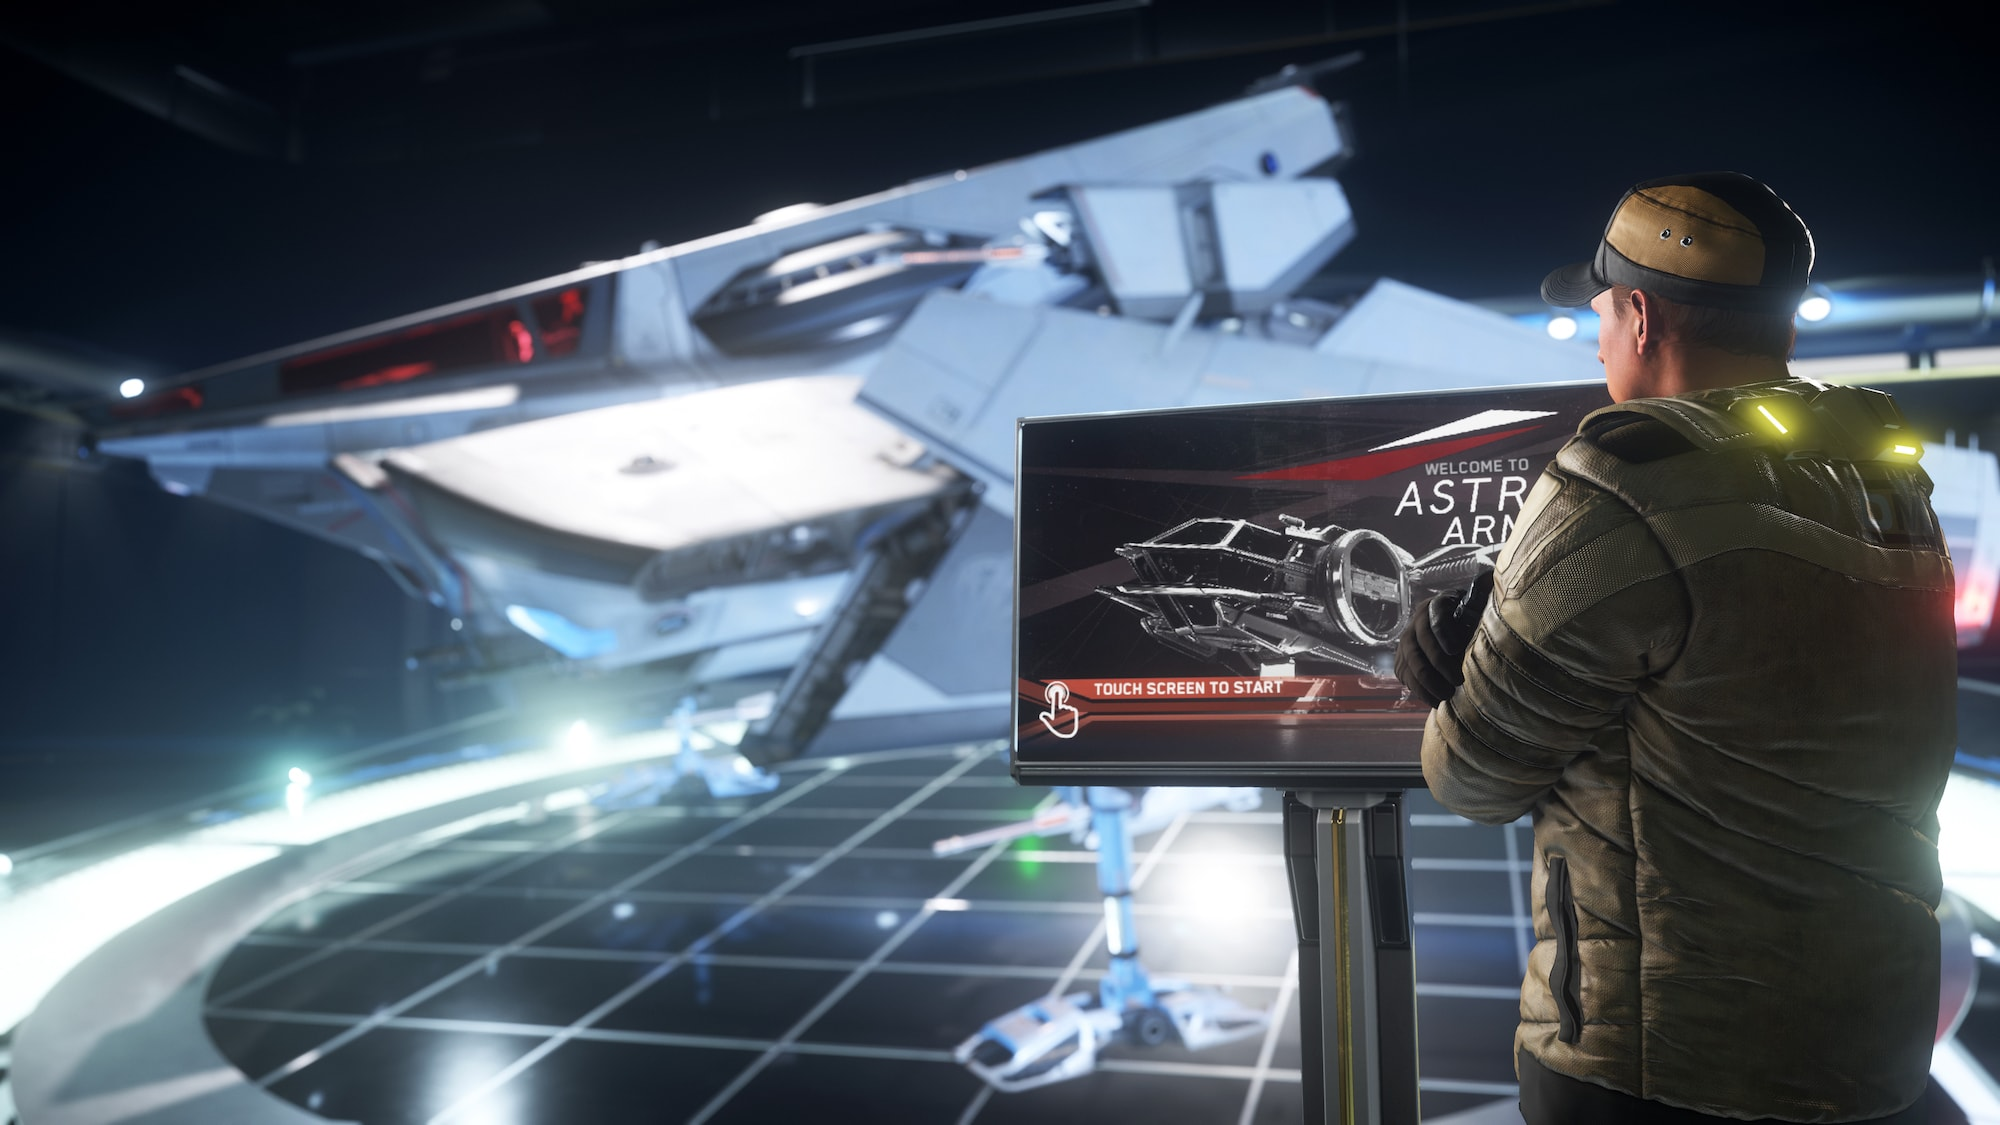 Alpha 3 6 Now Available Roberts Space Industries Follow The Development Of Star Citizen And Squadron 42